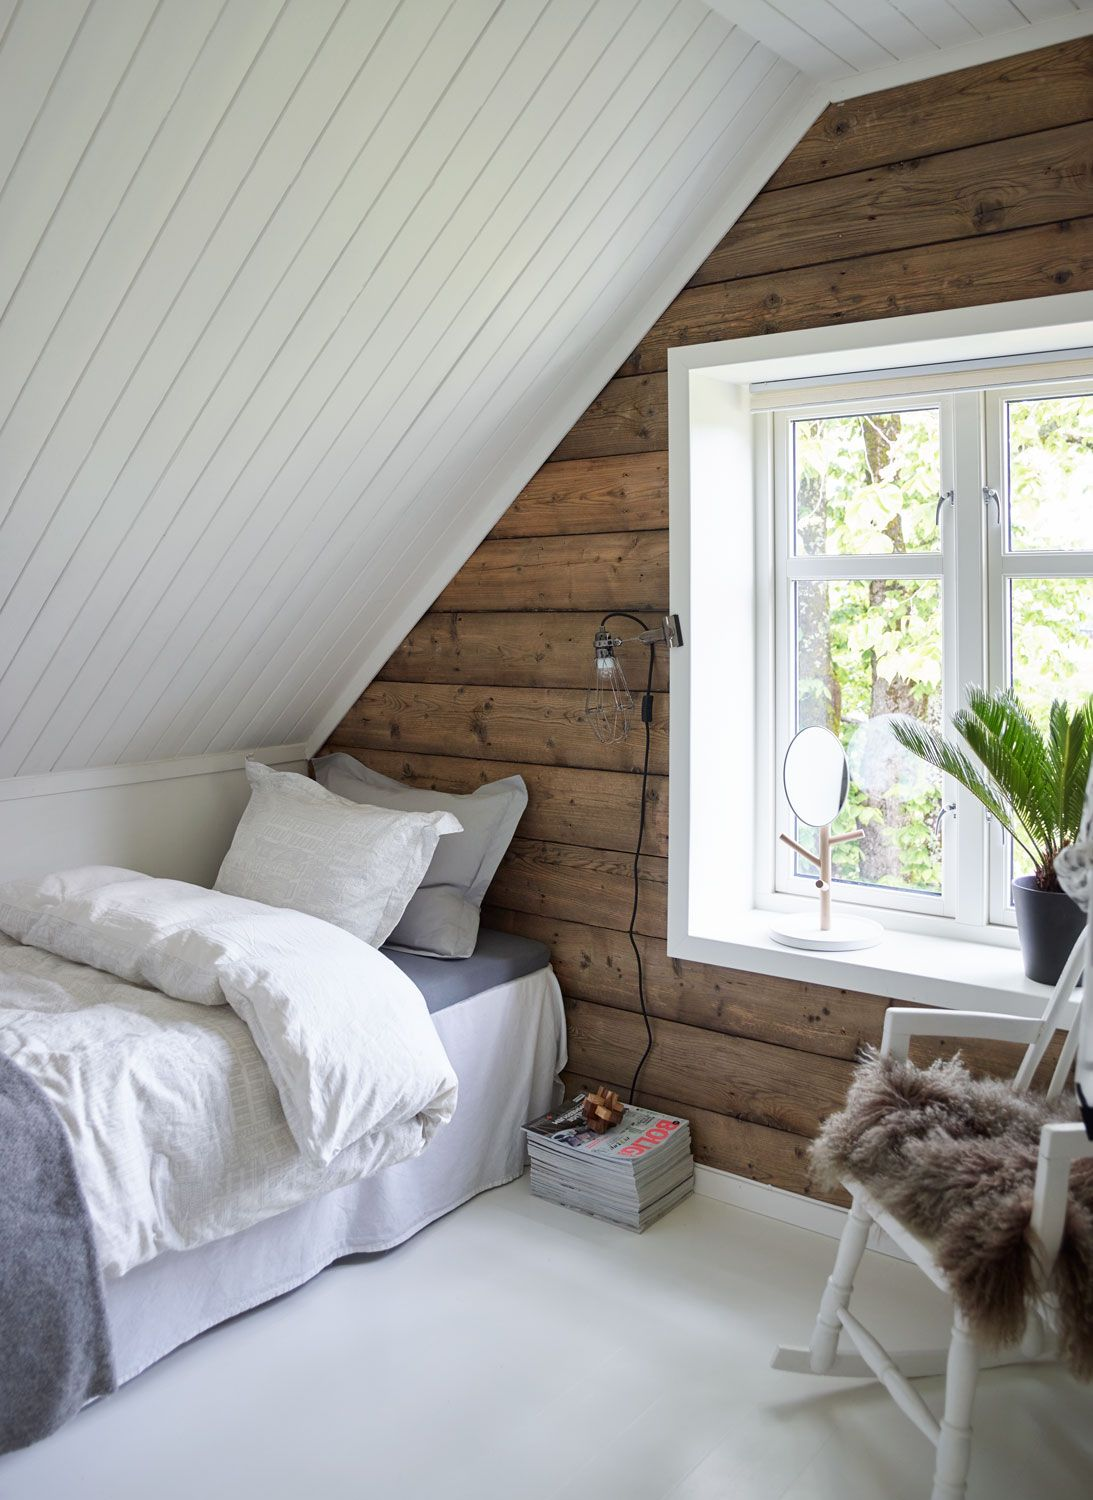 Attic Bedroom Design and Dcor Tips | Bedroom | Pinterest ...